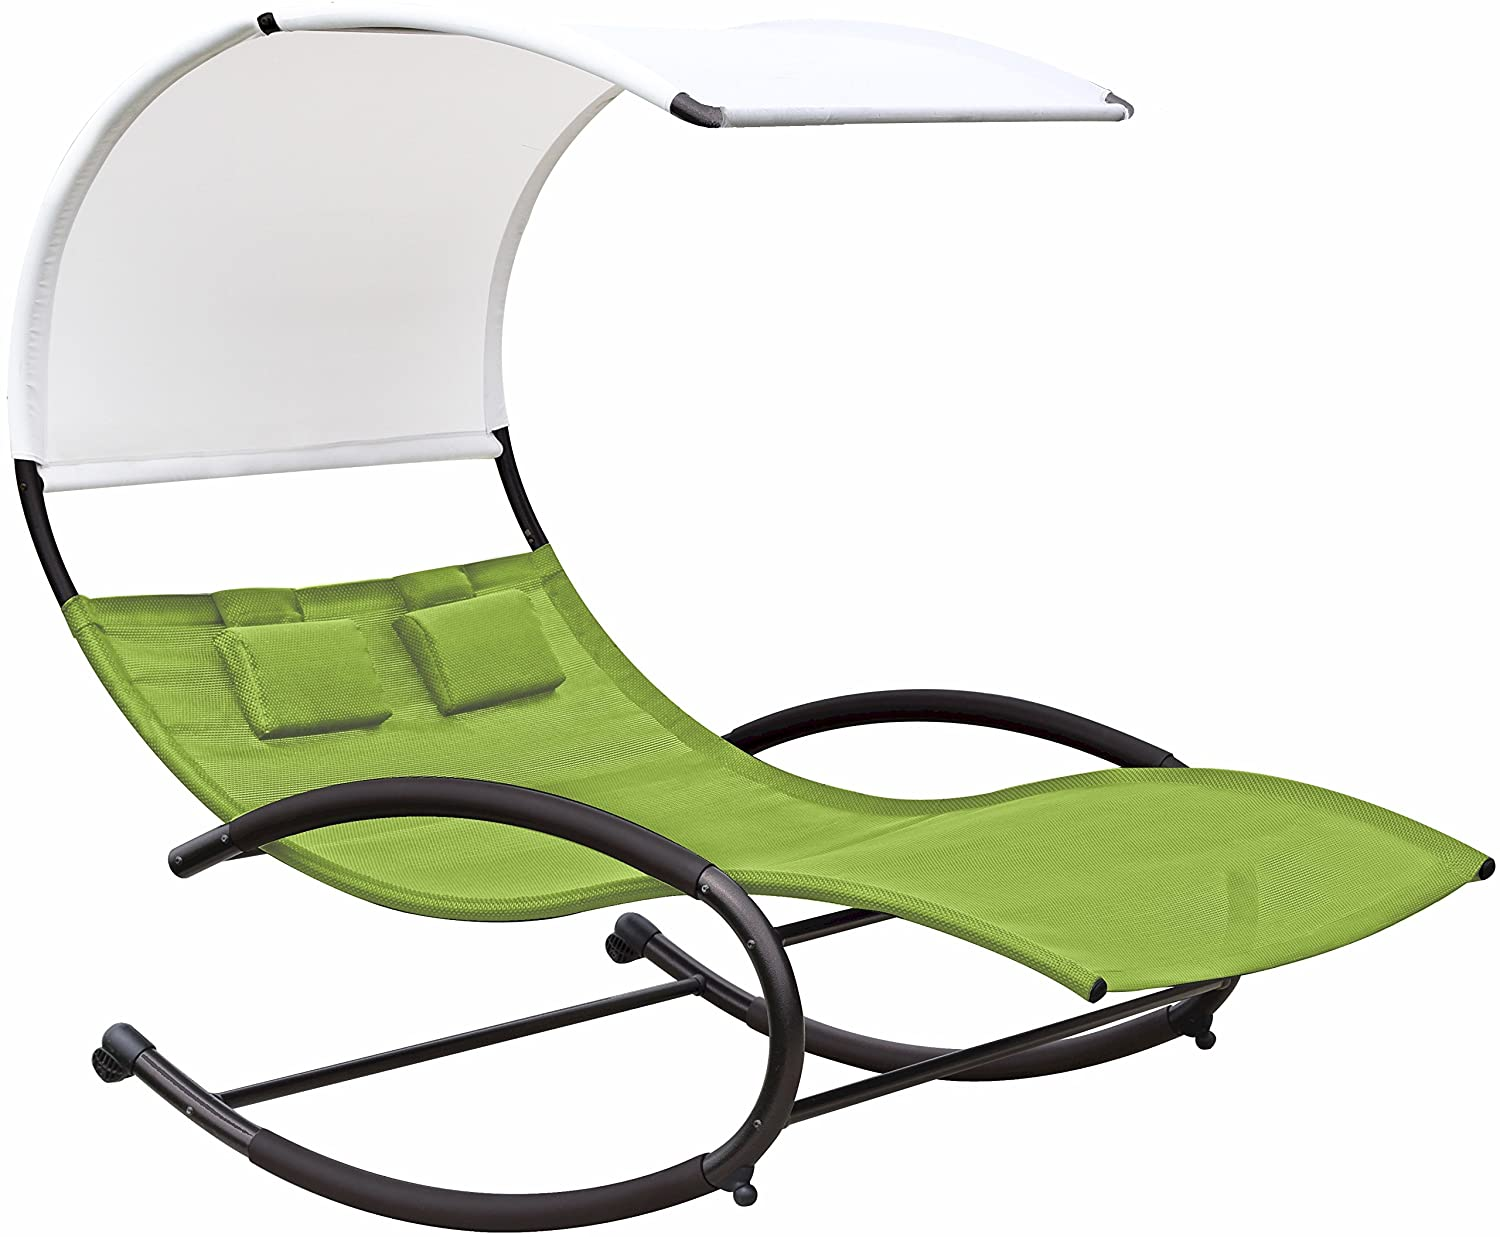 Double Seat Chair Patio Furniture Garden Double Seat Chaise Chair Canopy